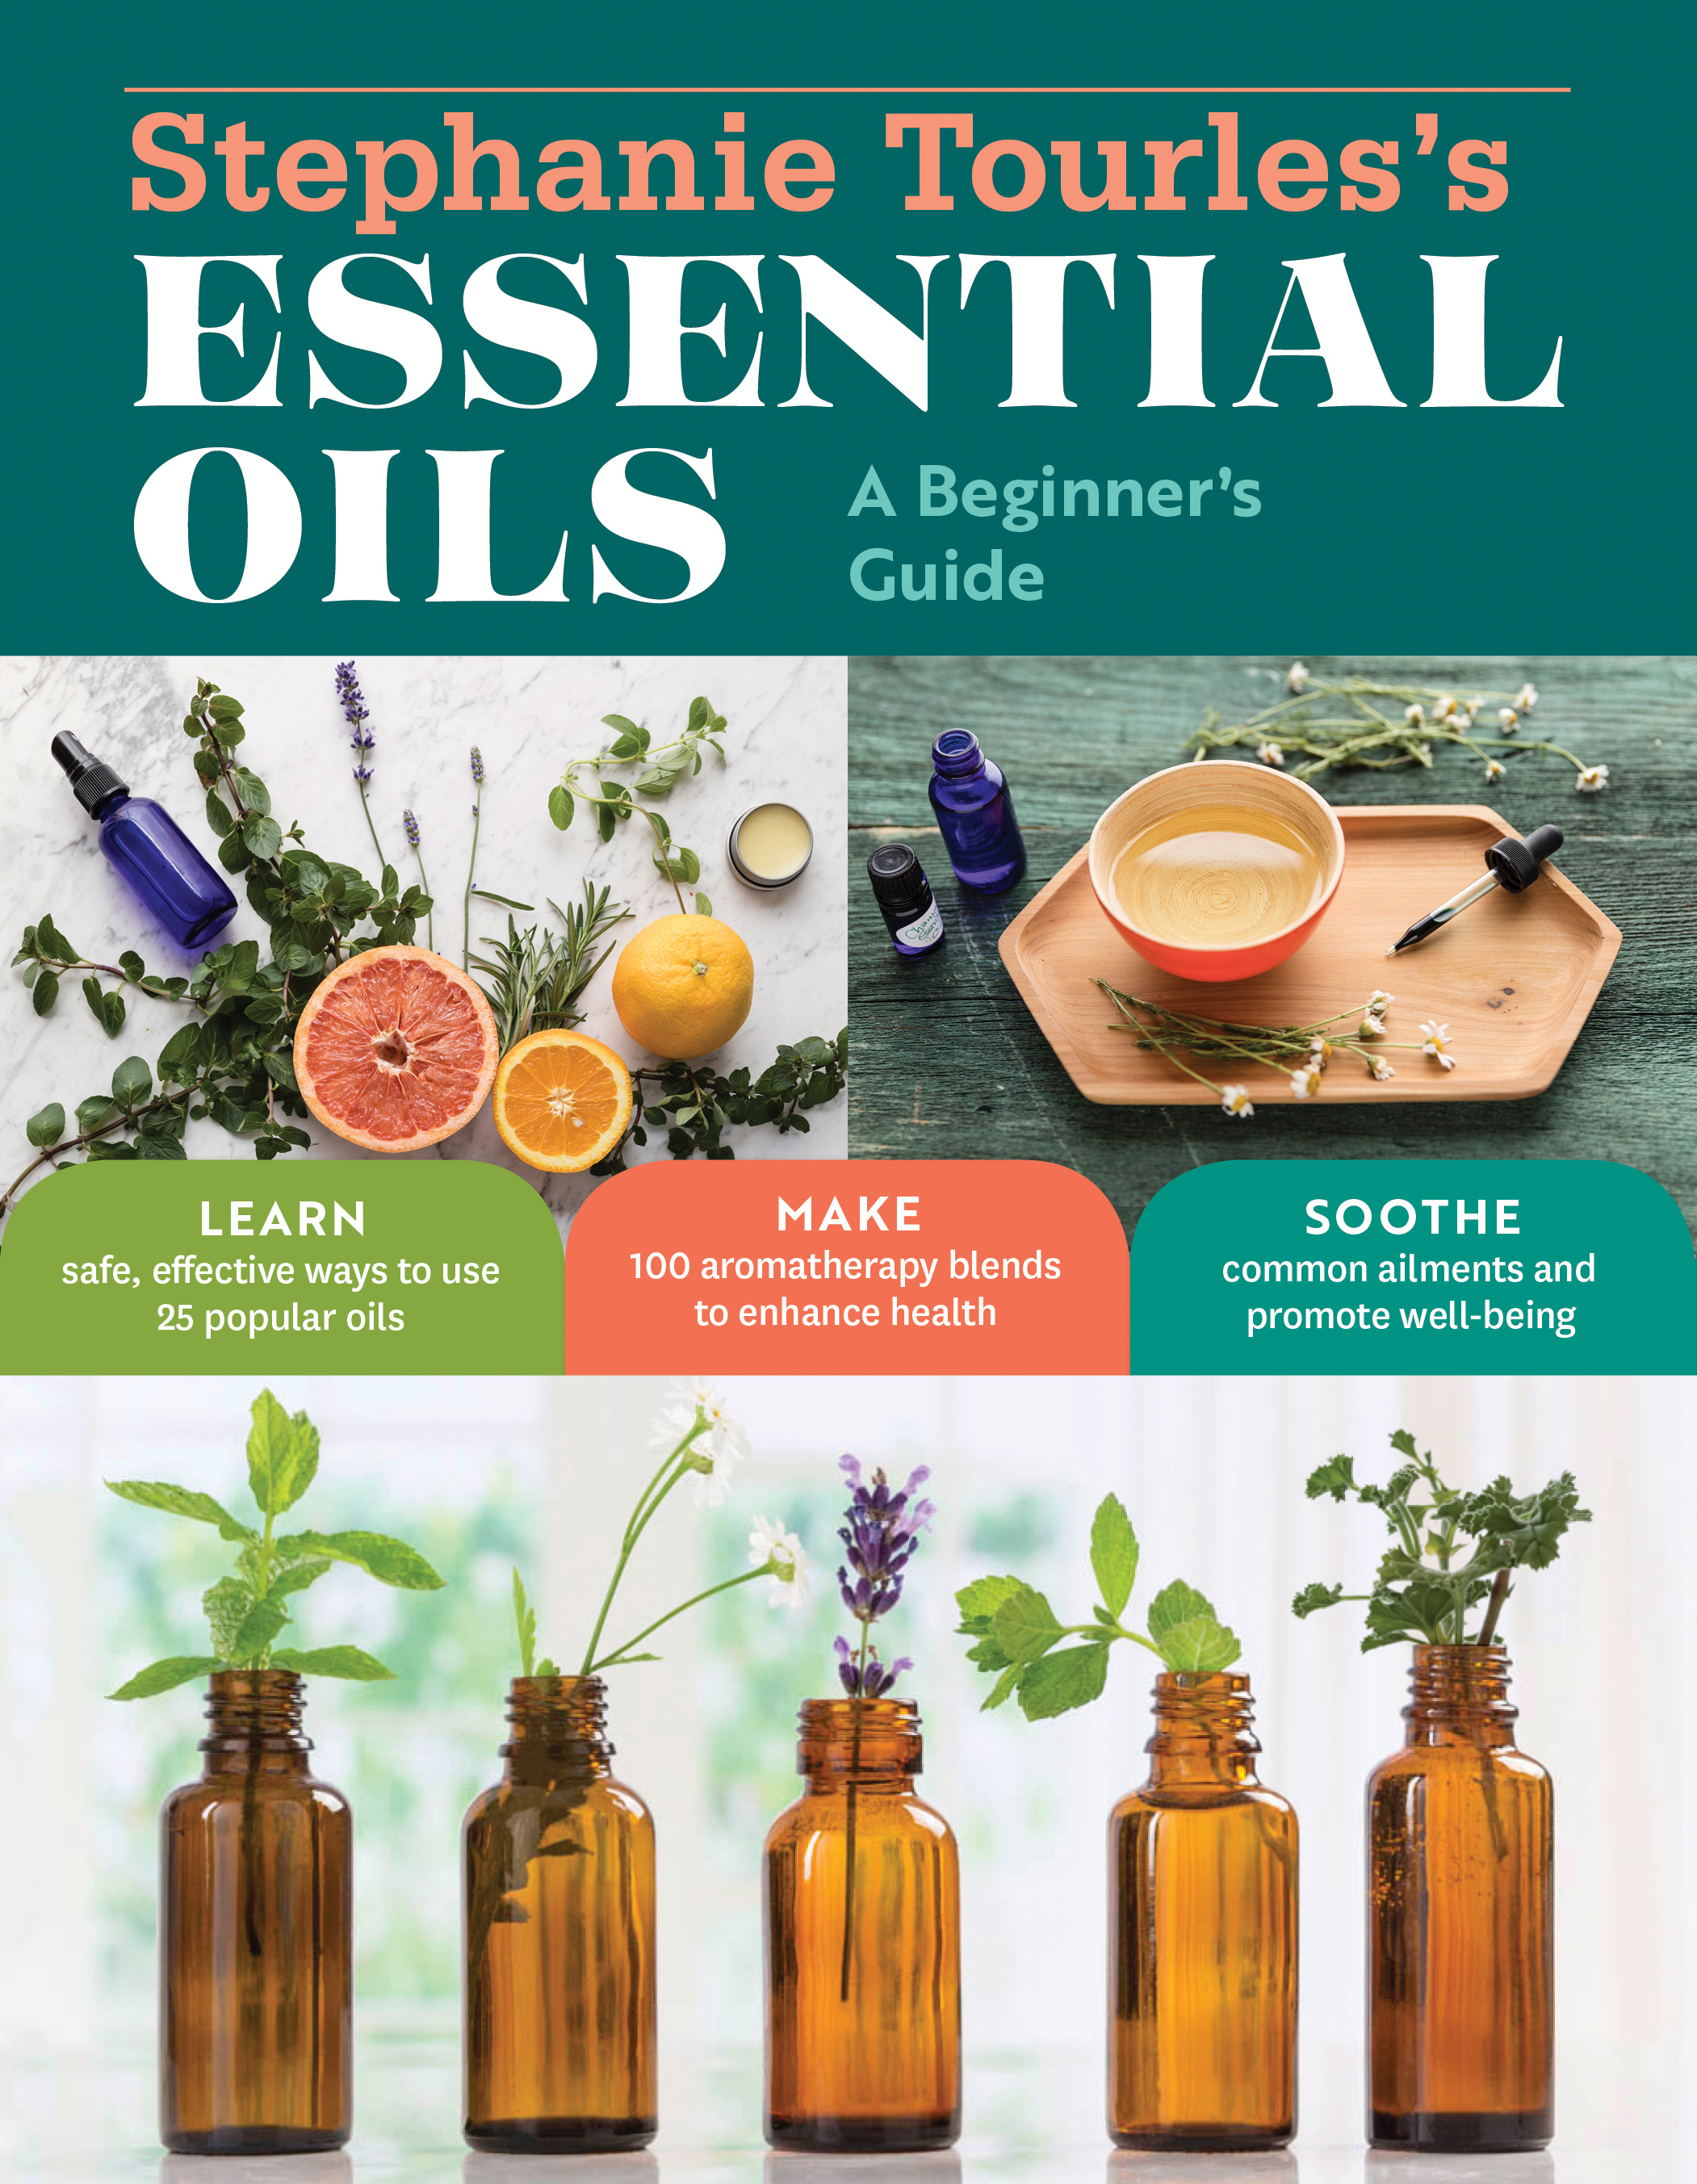 Stephanie Tourles's Essential Oils: A Beginner's Guide Learn Safe, Effective Ways to Use 25 Popular Oils; Make 100 Aromatherapy Blends to Enhance Health; Soothe Common Ailments and Promote Well-Being - Stephanie L. Tourles